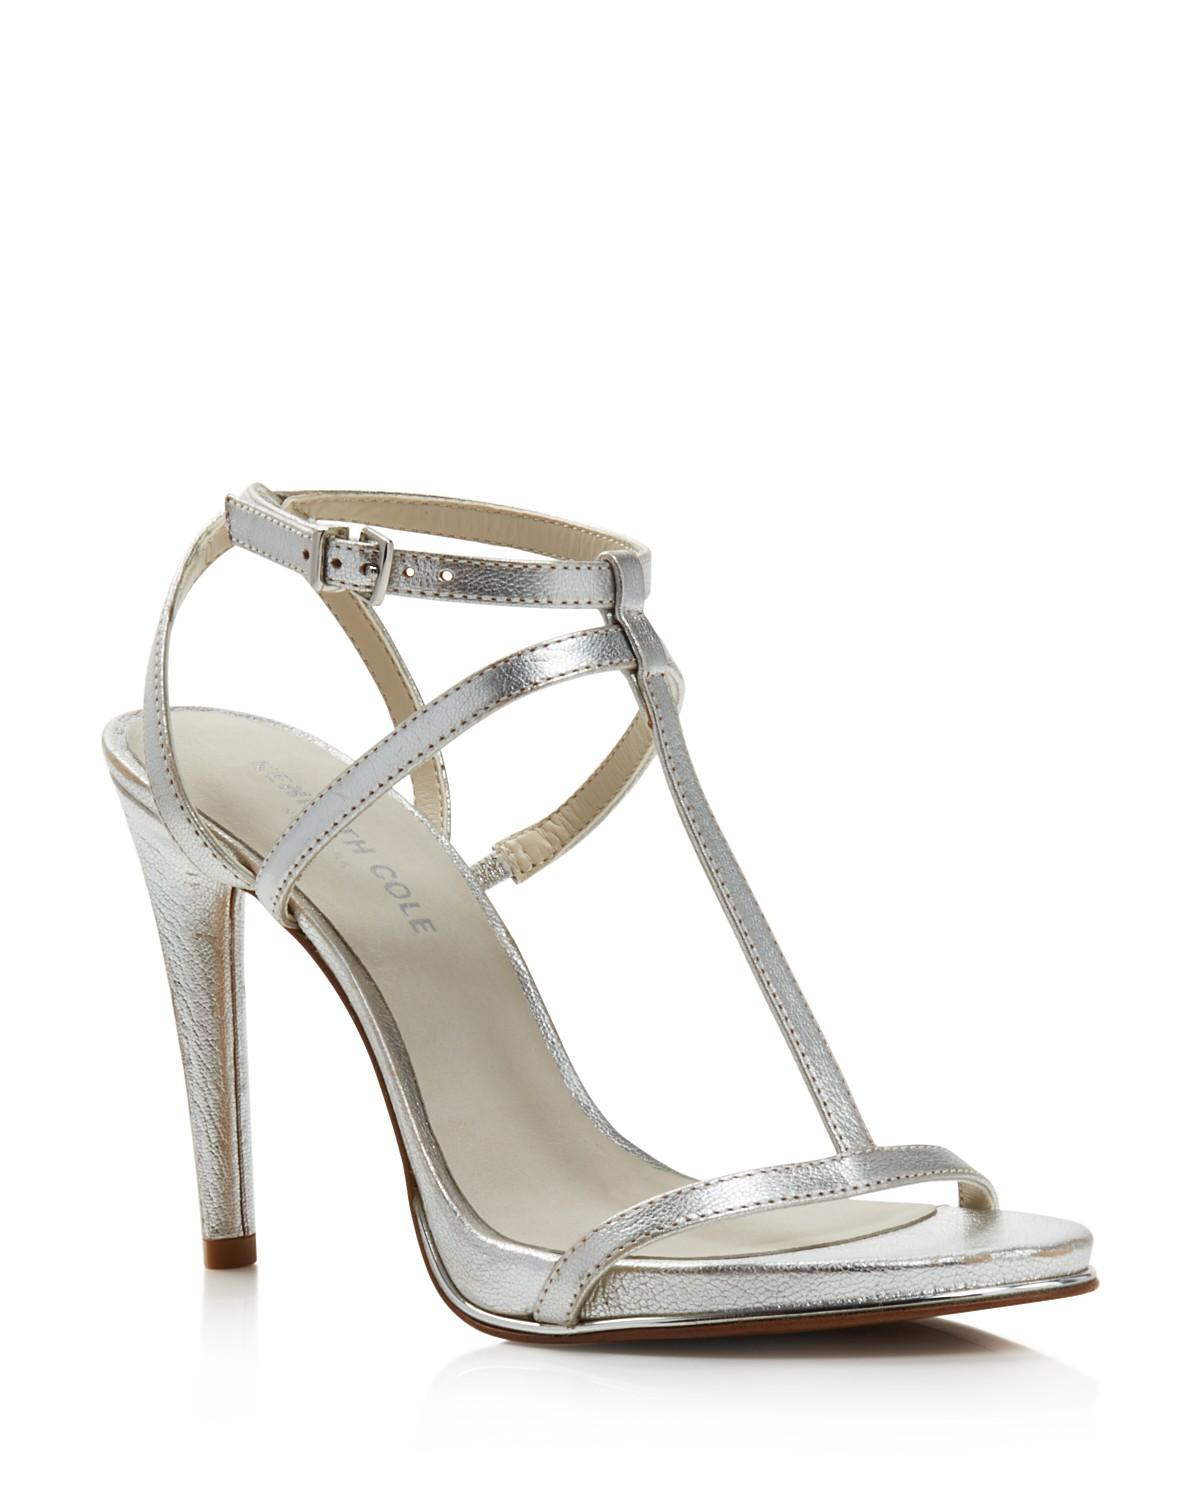 Kenneth Cole Women's Bellamy Leather High-Heel T-Strap Sandals QLGzo